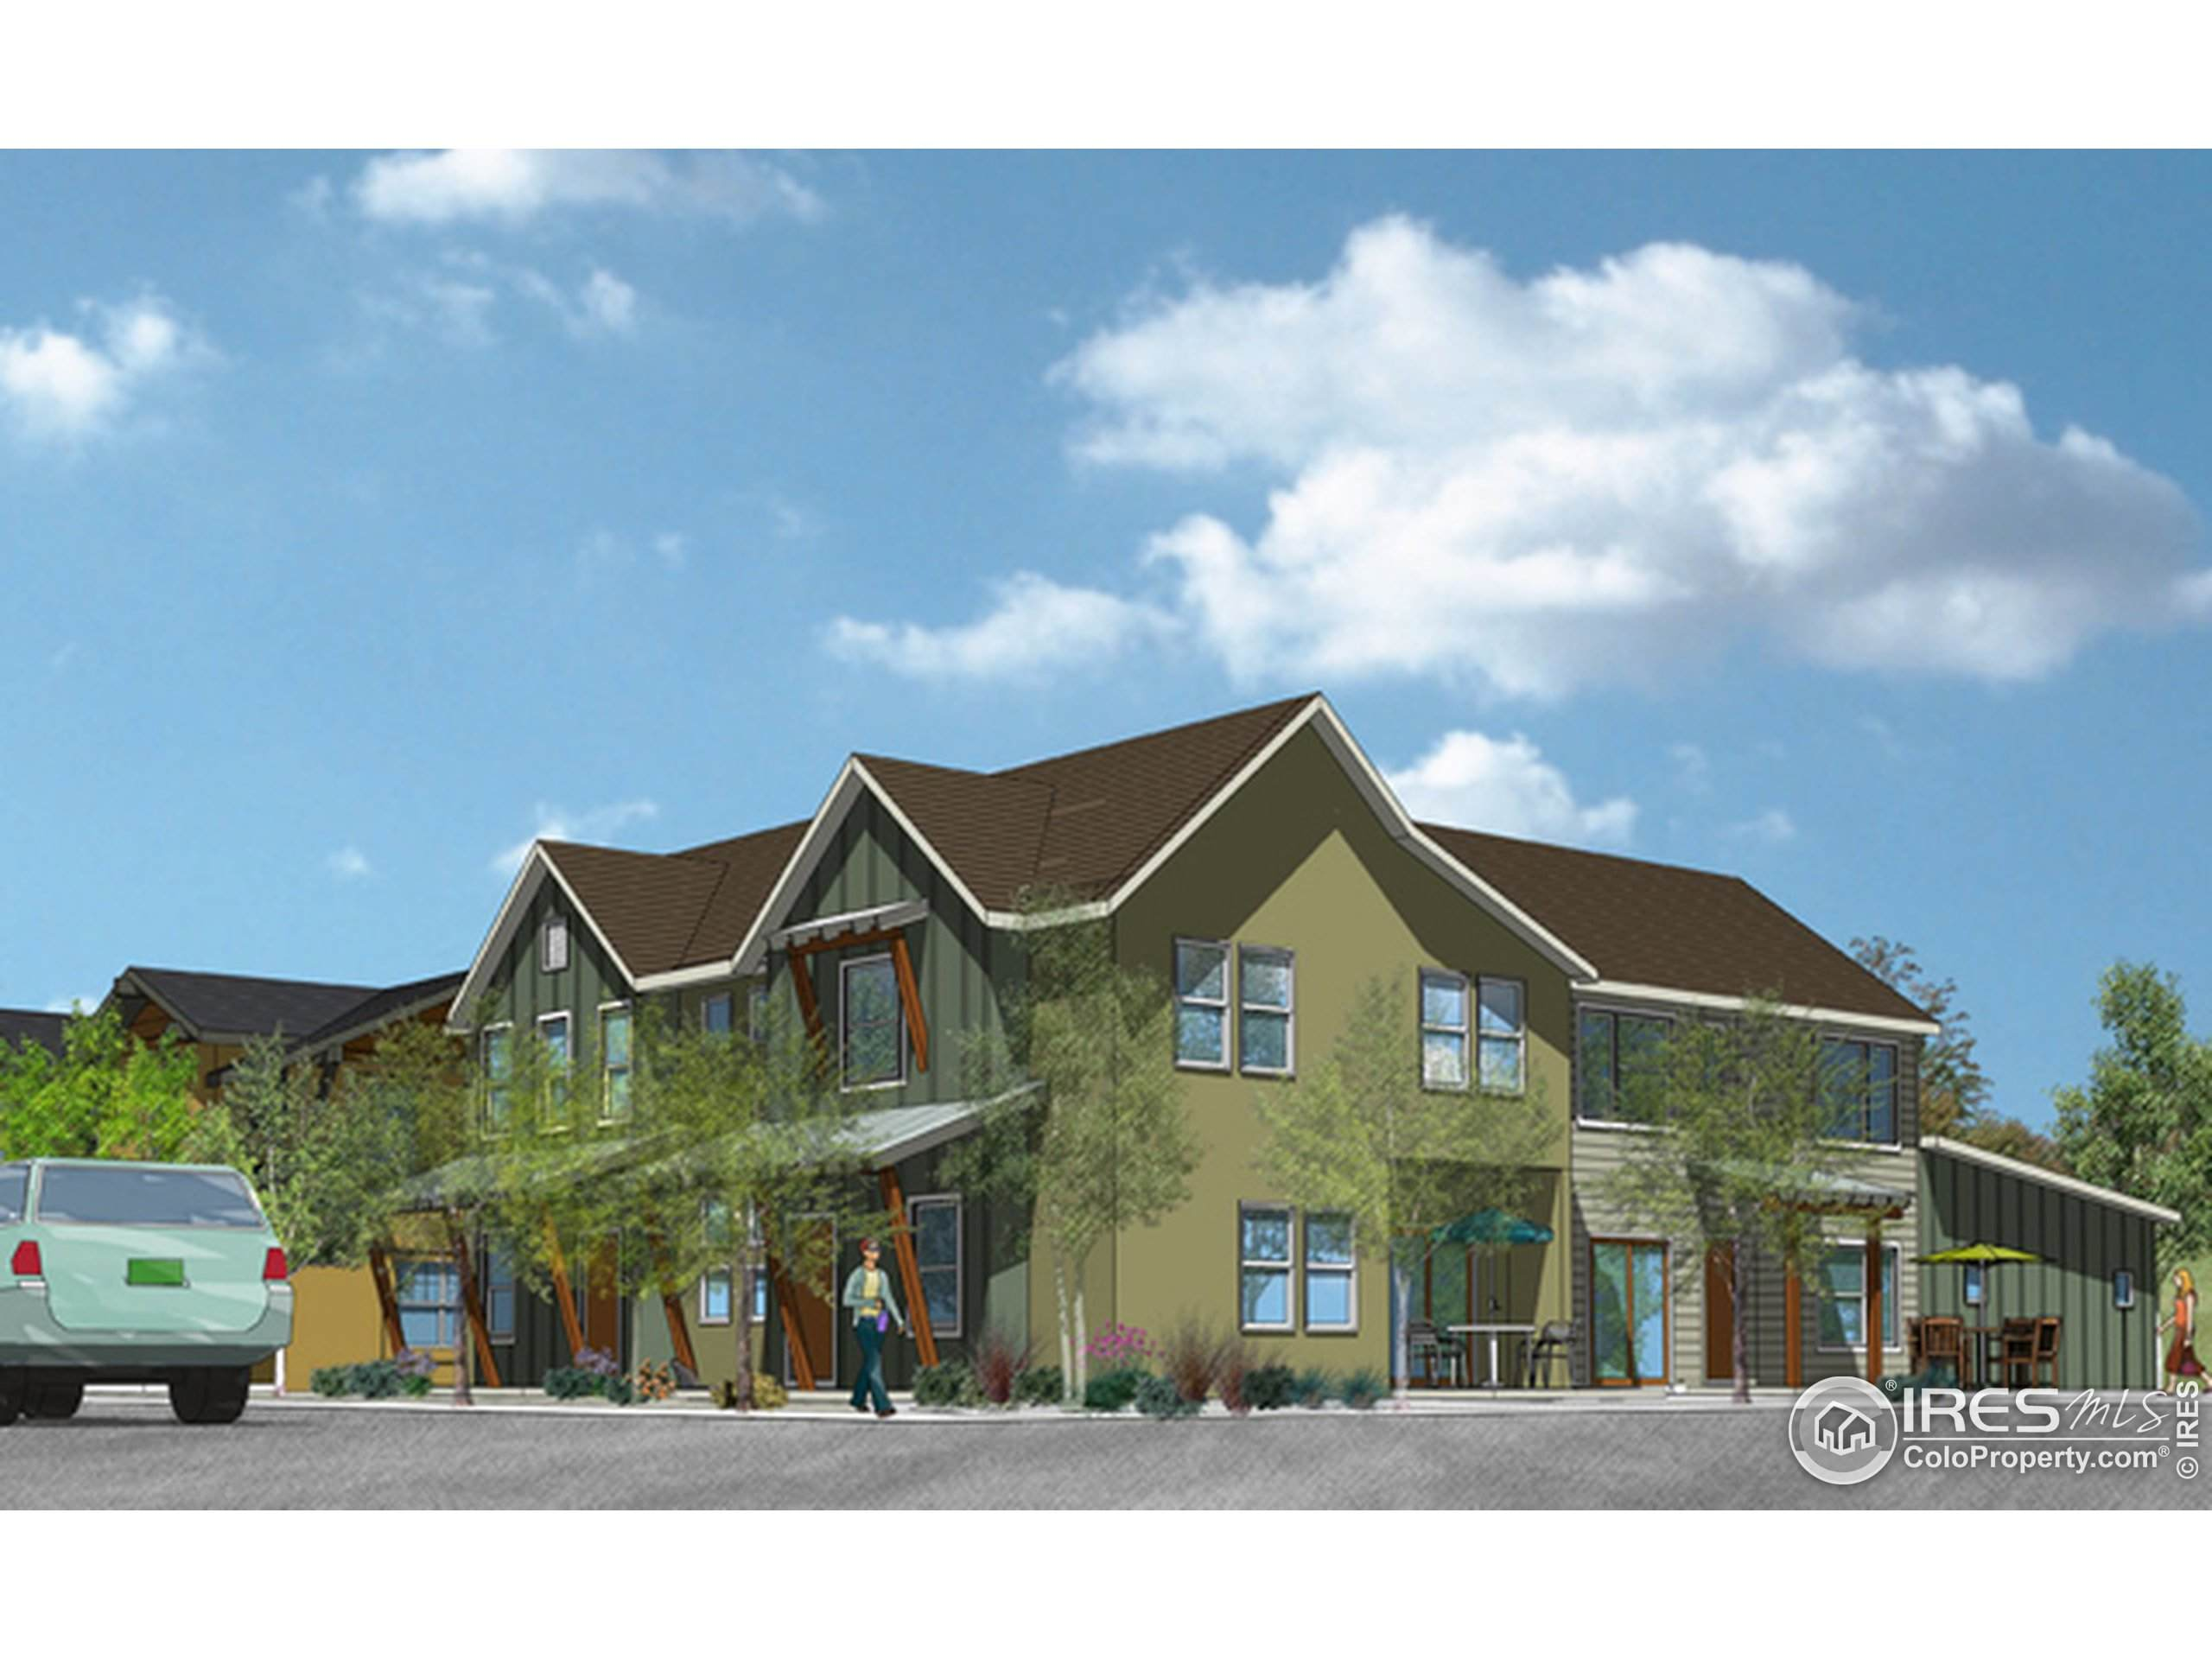 5650 S Gray St, Littleton, CO 80123 (MLS #926312) :: Hub Real Estate